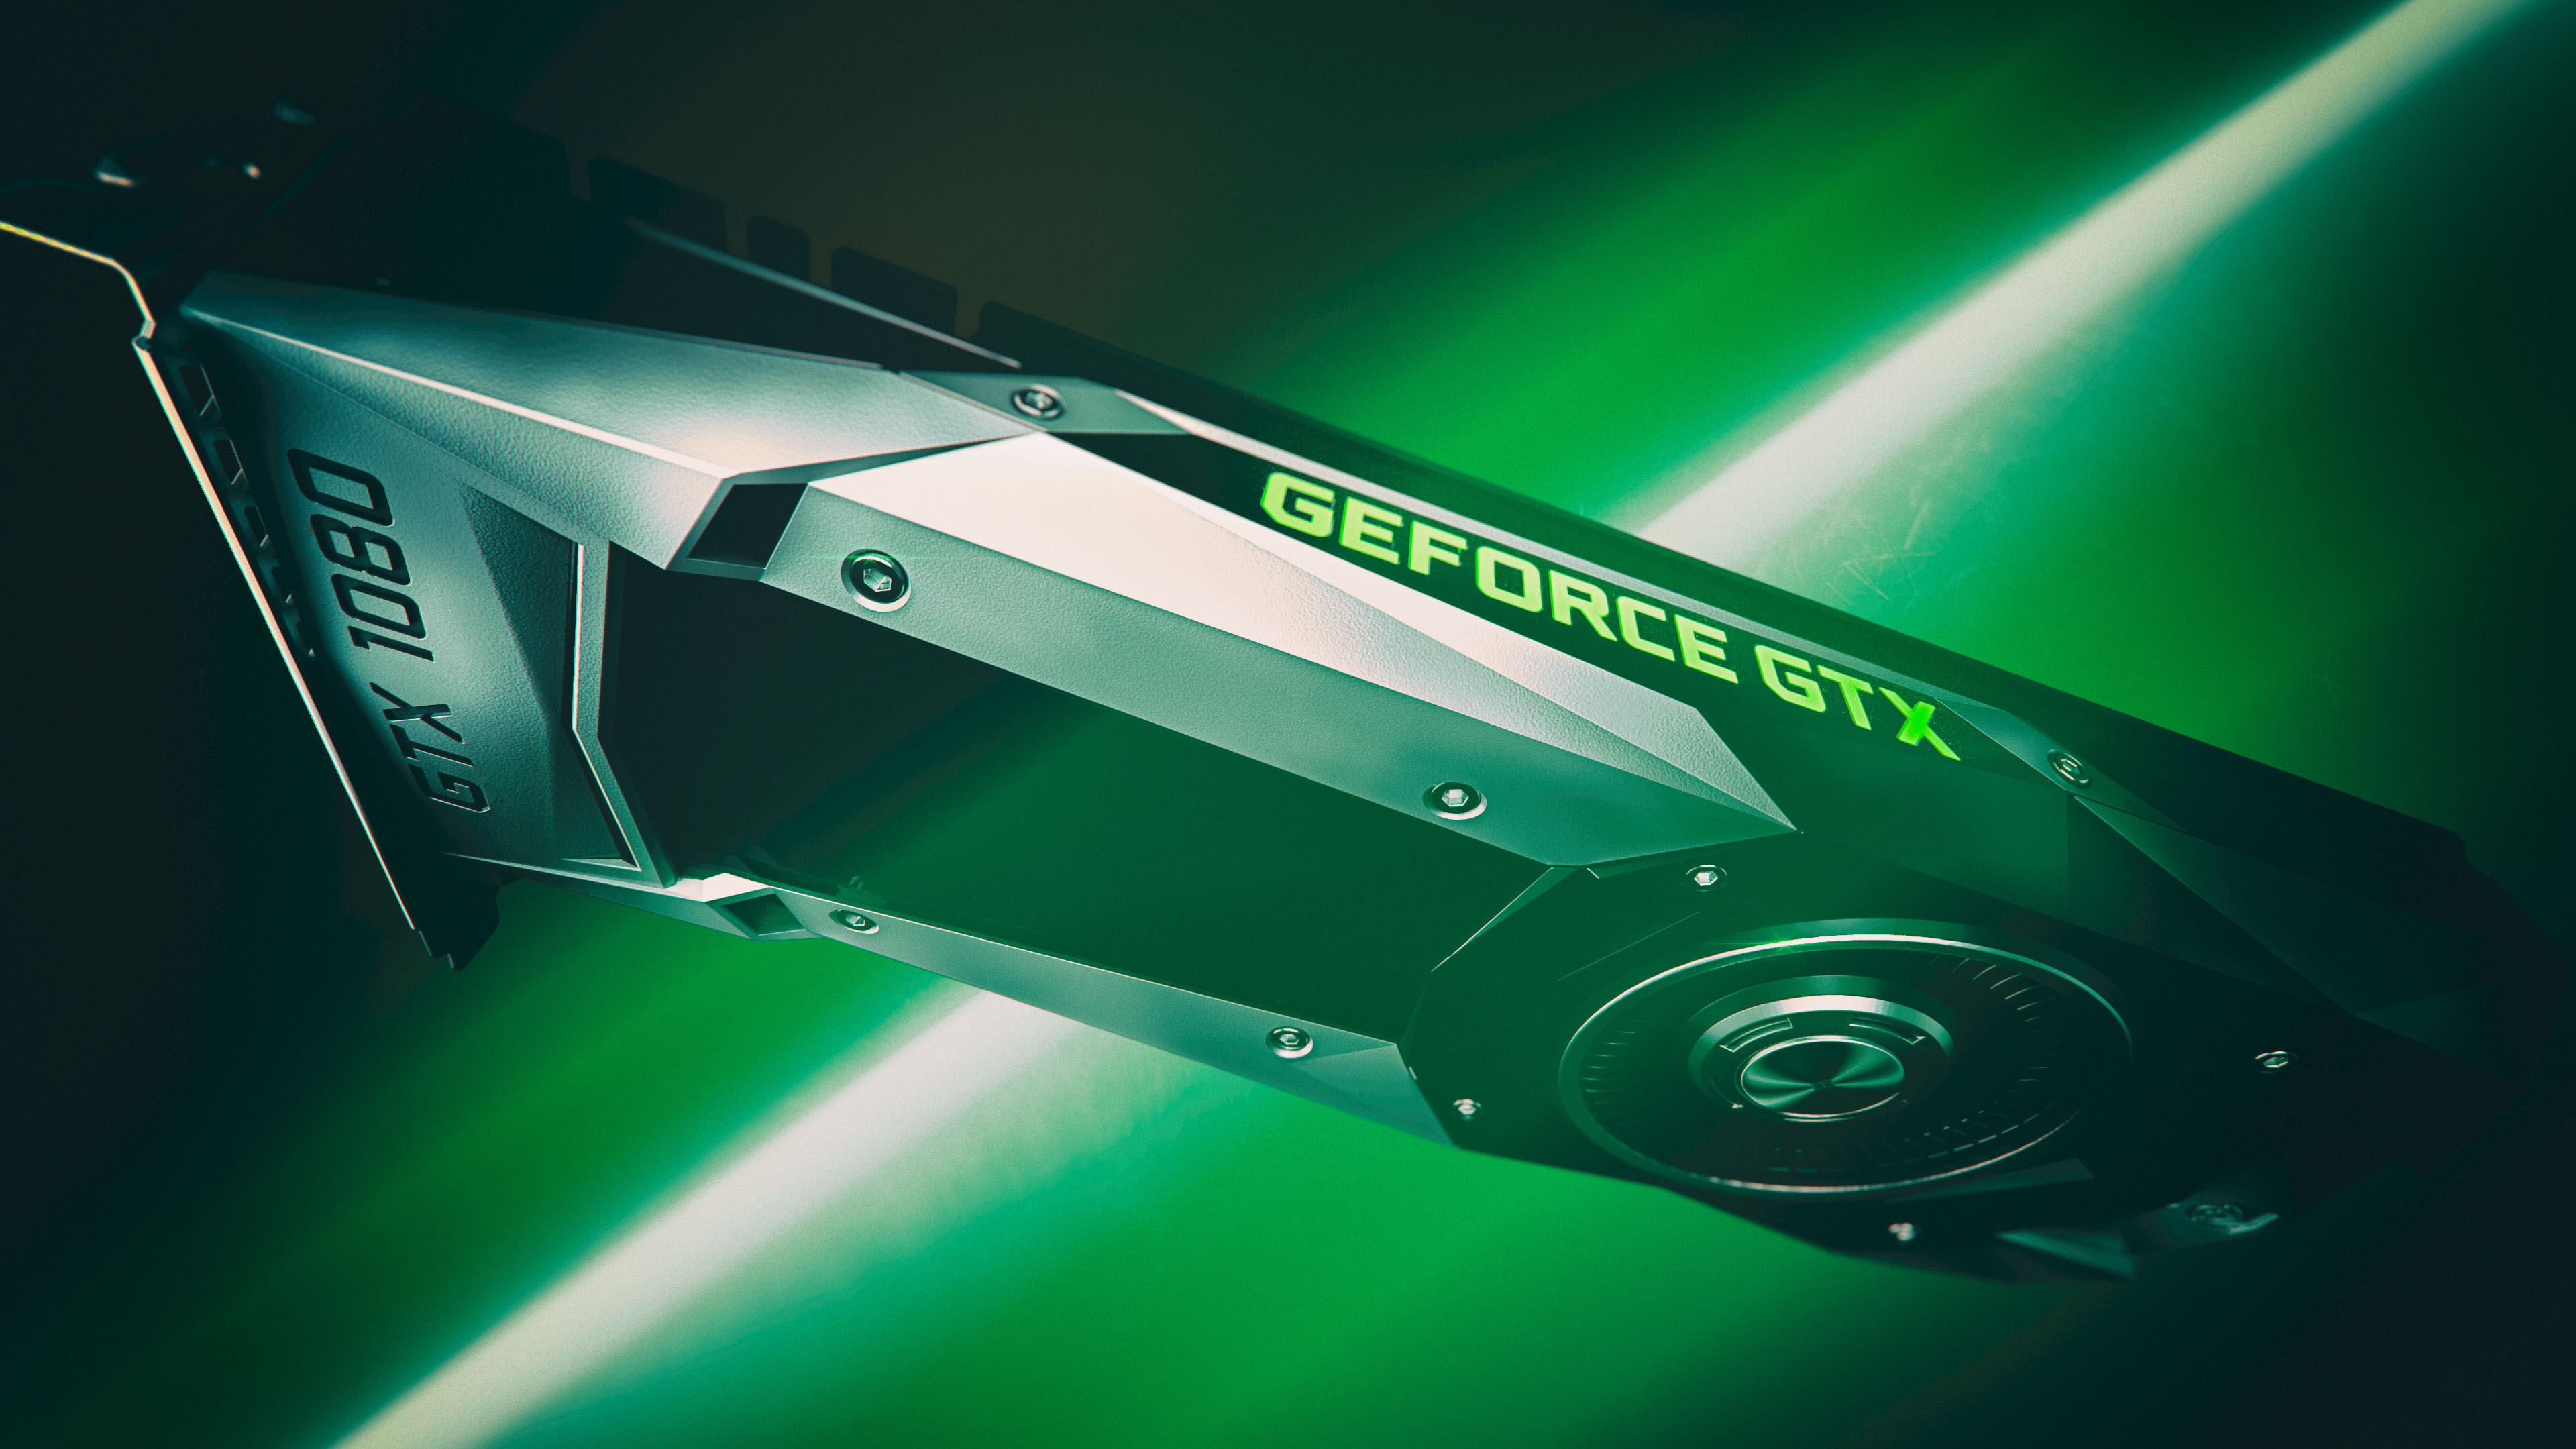 Trickut - Nvidia GeForce GTX 1080 Review - Powerful Graphics Card for Gaming - Review